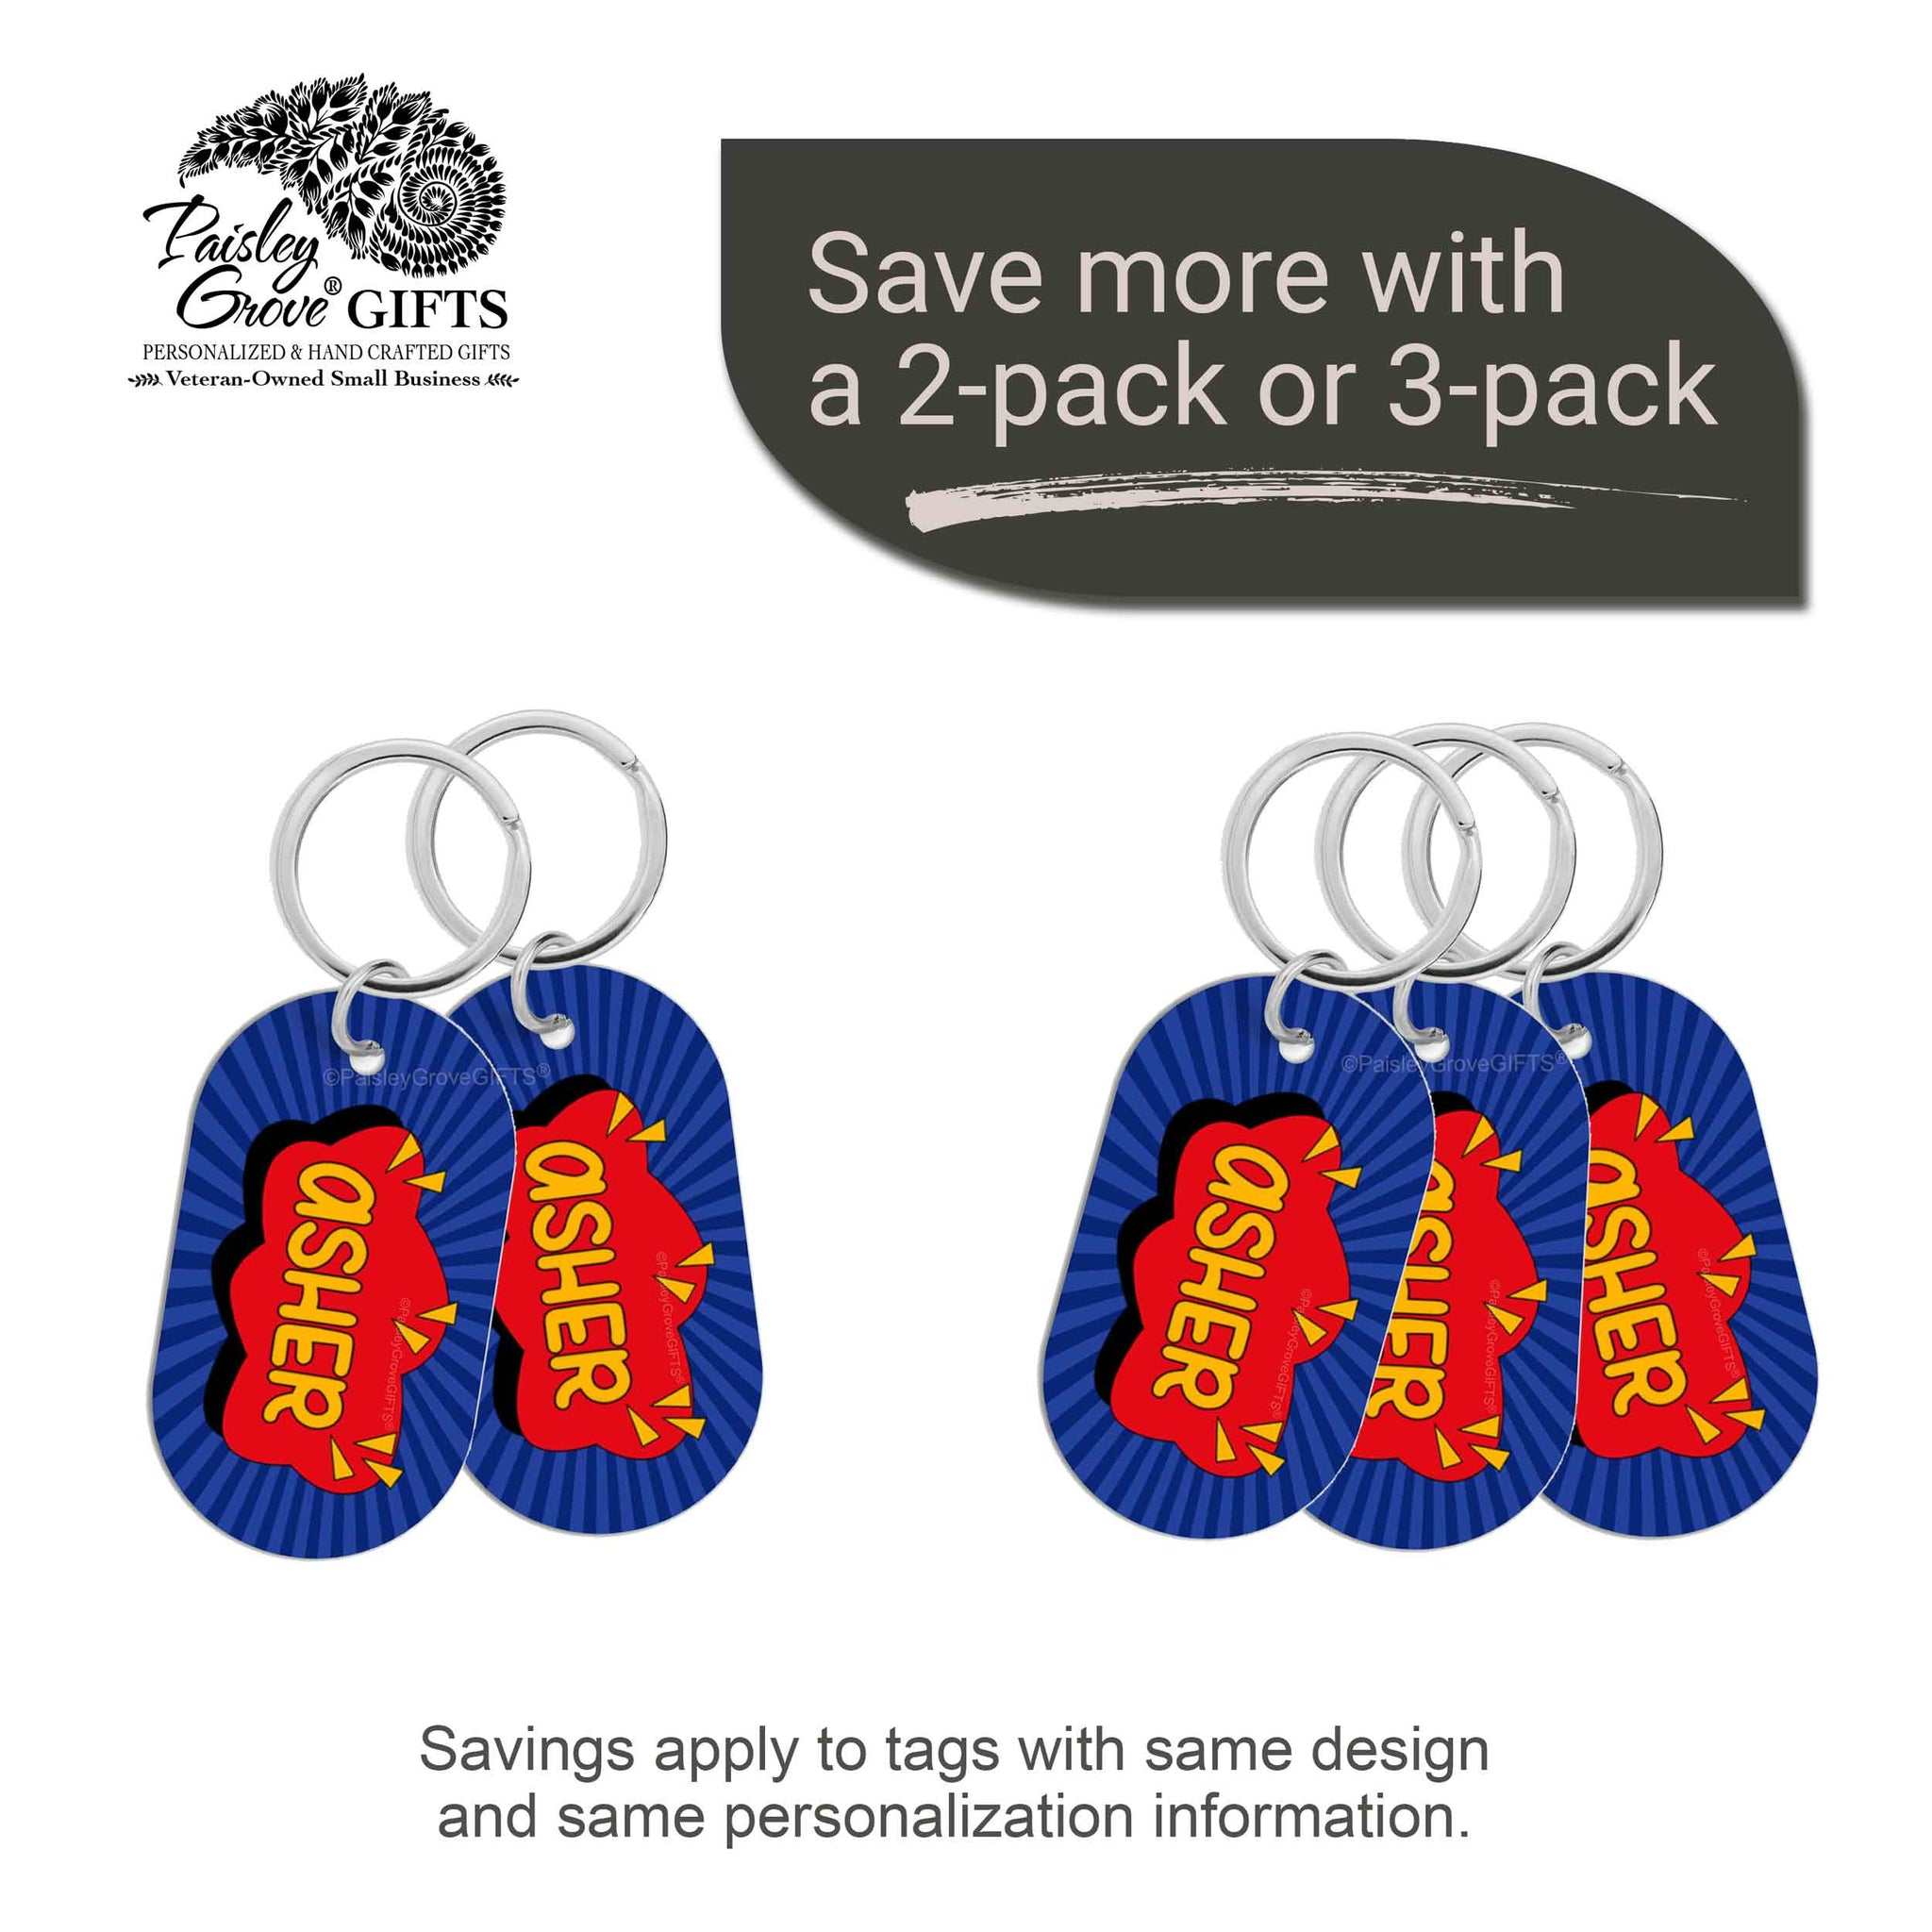 CopyrightPaisleyGroveGIFTS S070a1 Personalized bag ID tags for luggage or bags 2 or 3 pack option savings